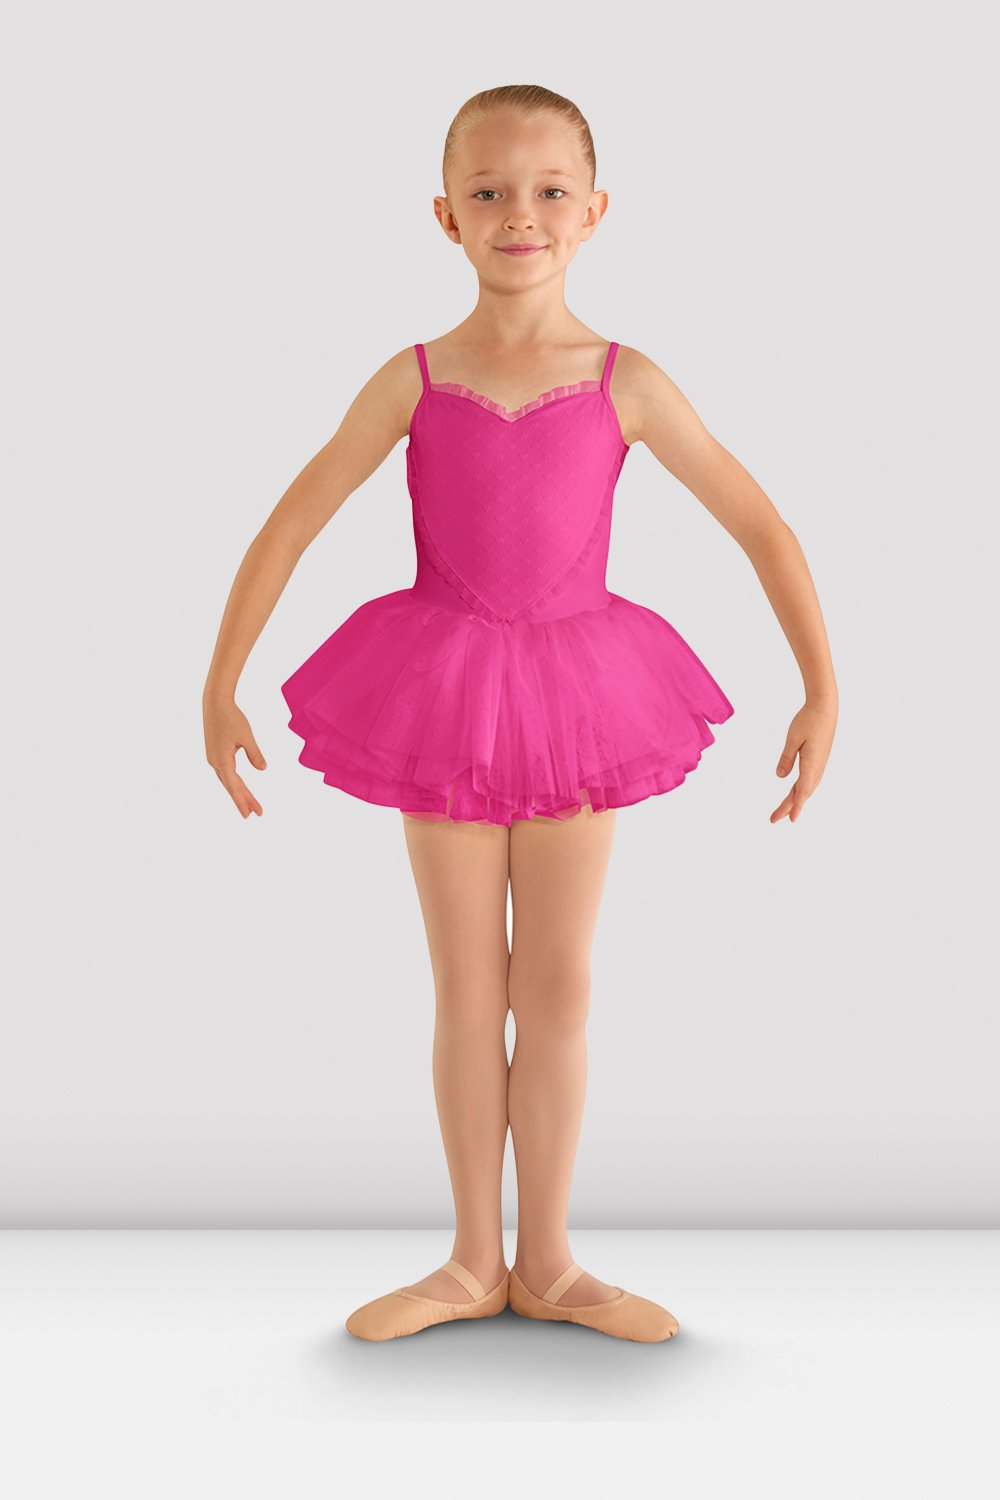 Girls Valentine Tutu Leotard - BLOCH US